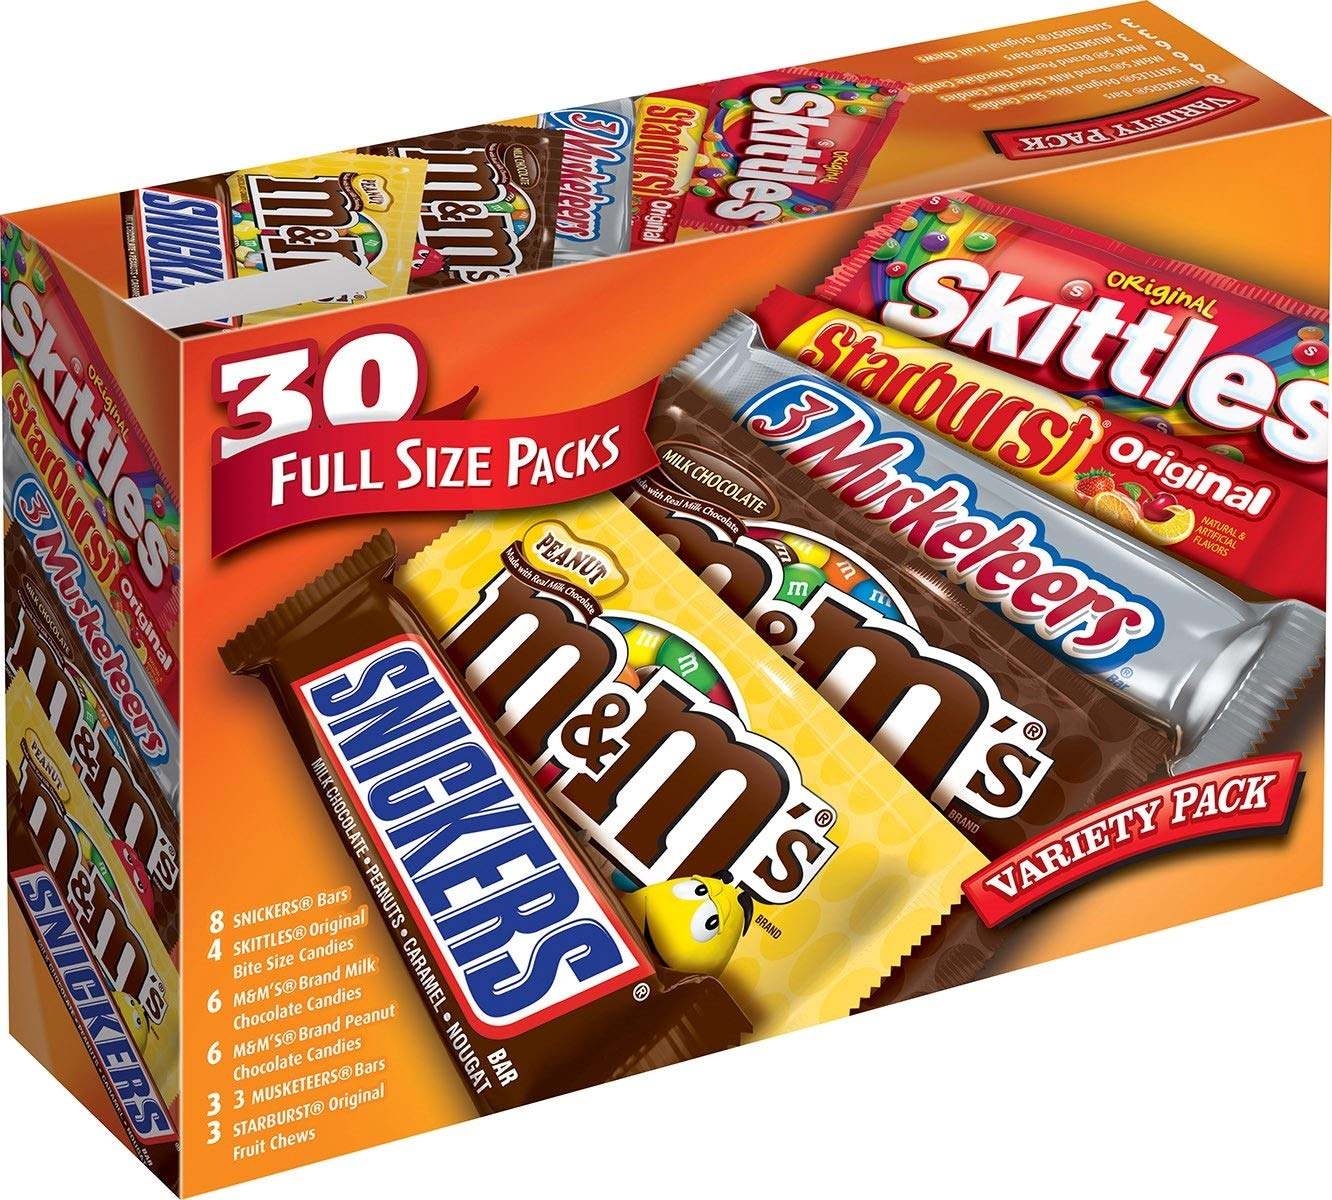 M&M'S, SNICKERS, 3 MUSKETEERS, SKITTLES & STARBURST Full Size Chocolate Candy Variety Mix 56.11-Ounce 30-Count Box by Mars